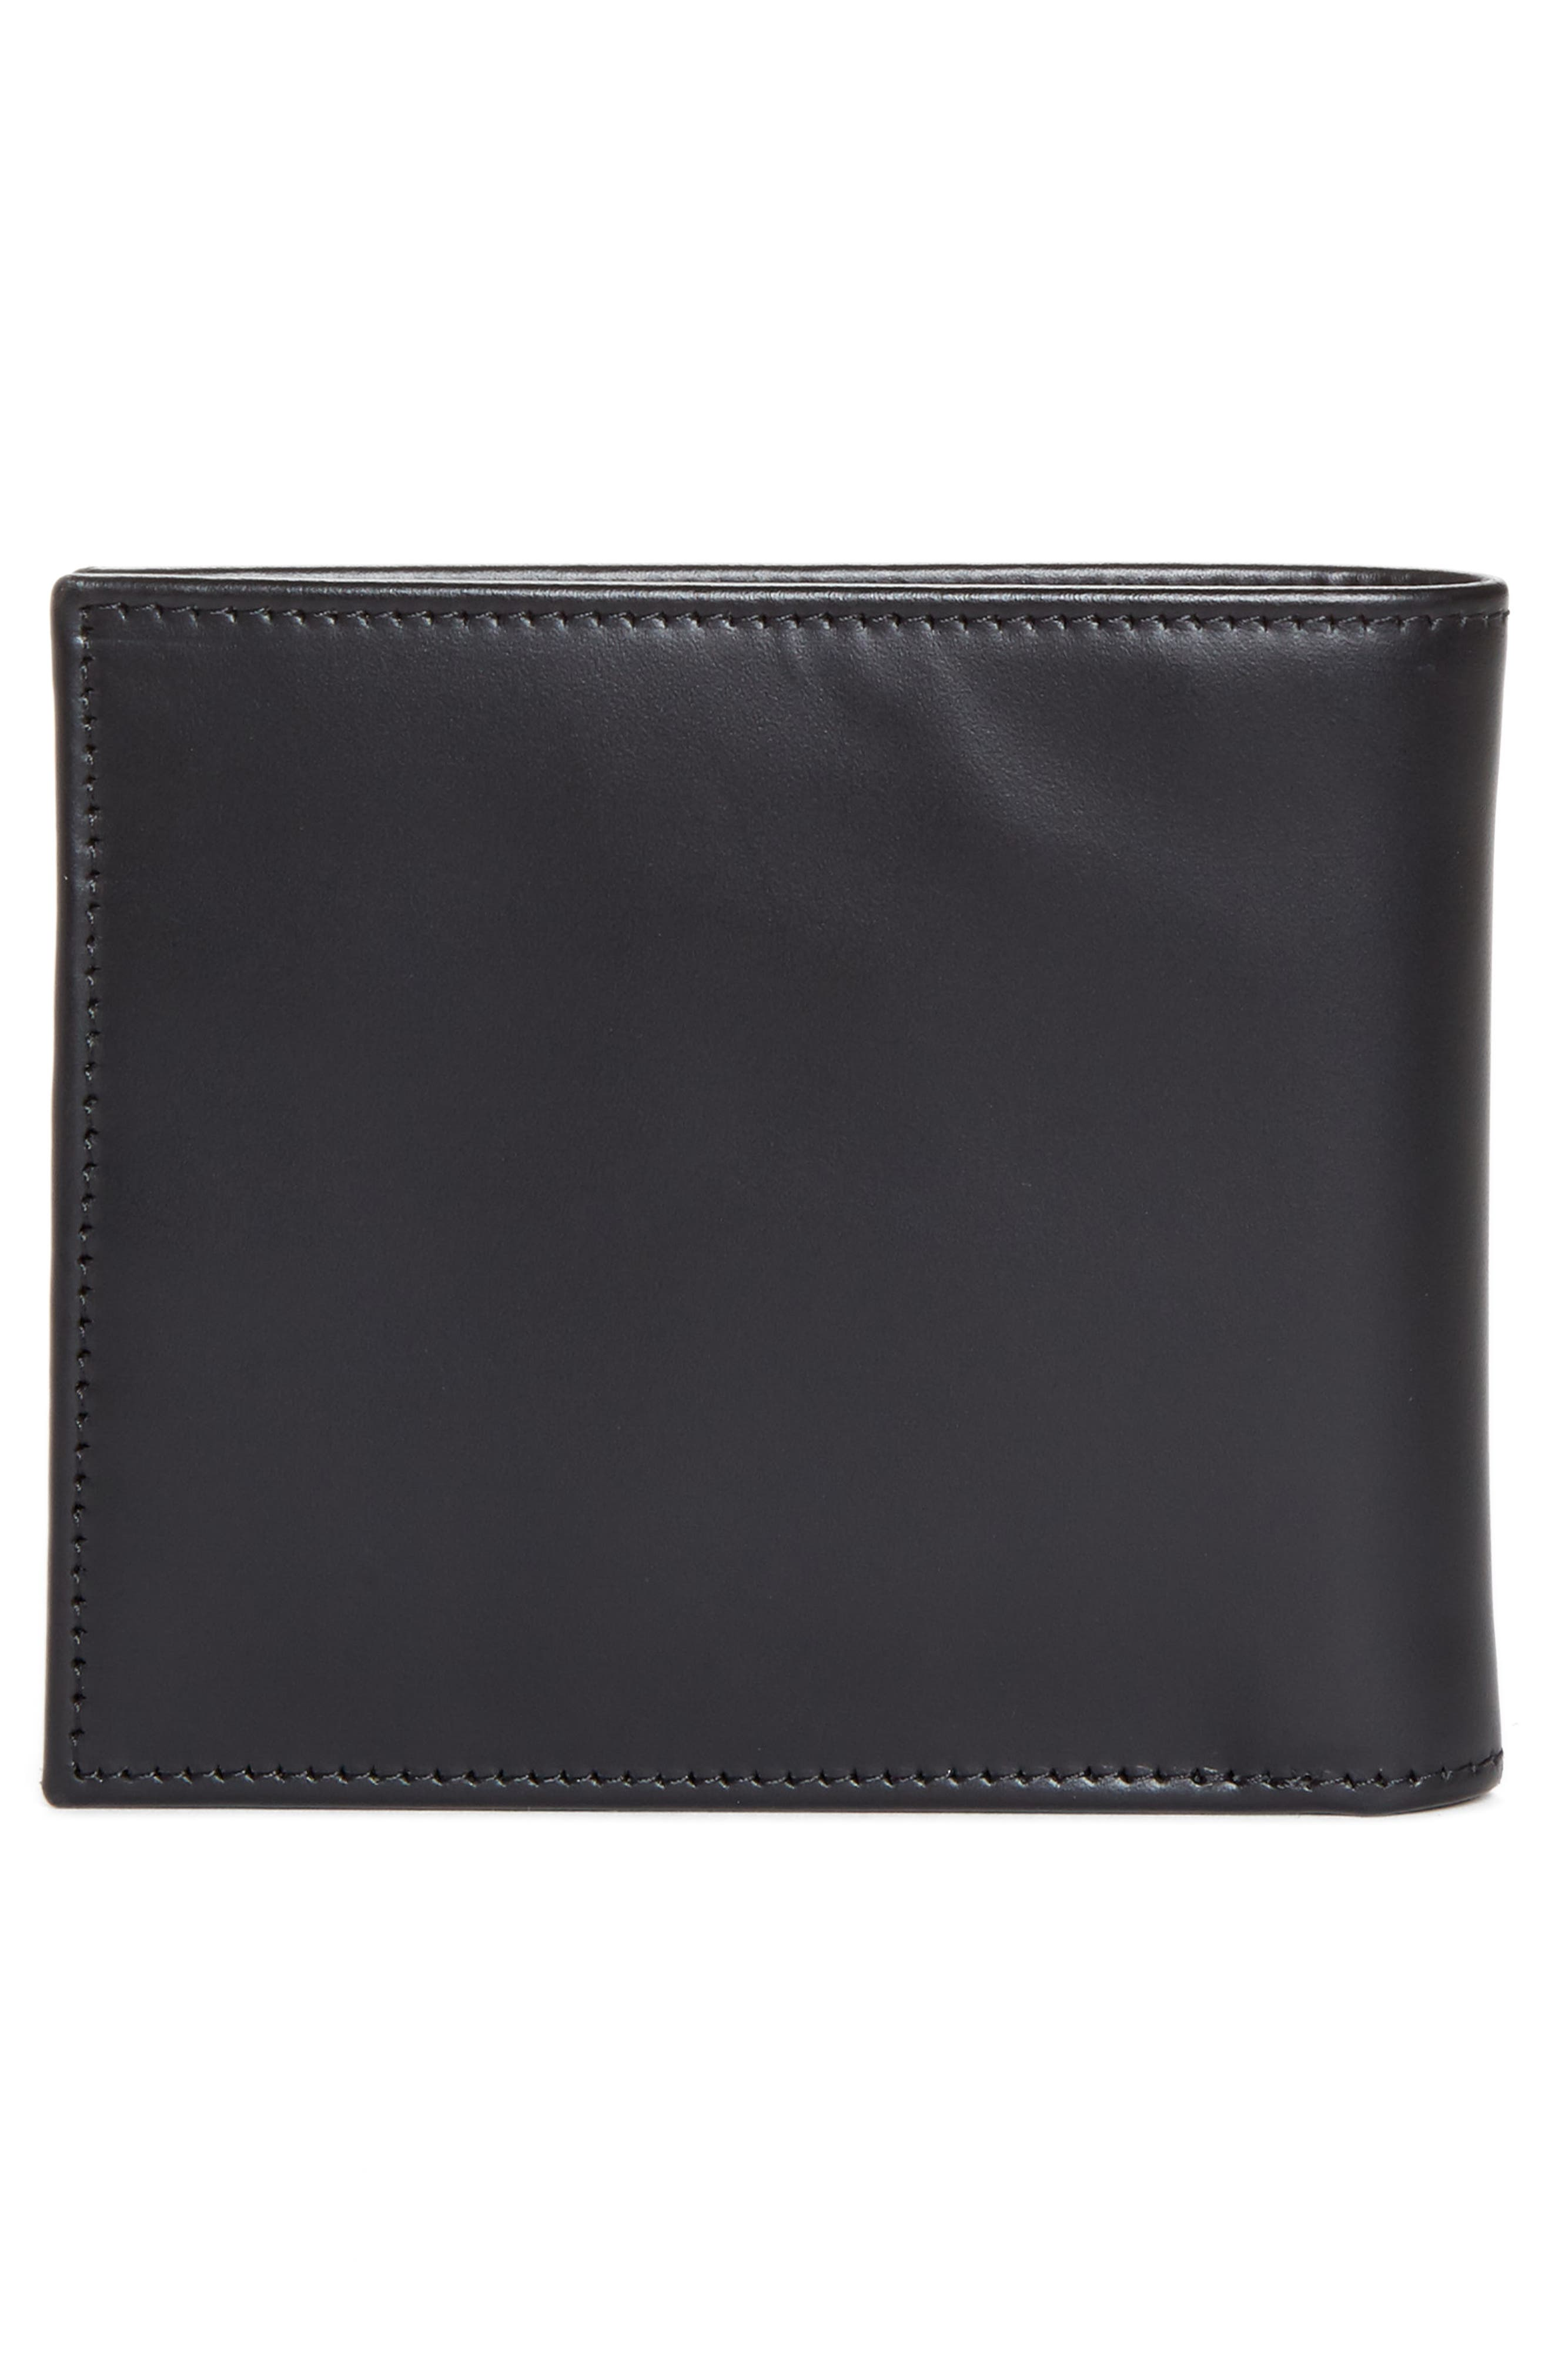 Alternate Image 3  - Paul Smith Multistripe Leather Wallet